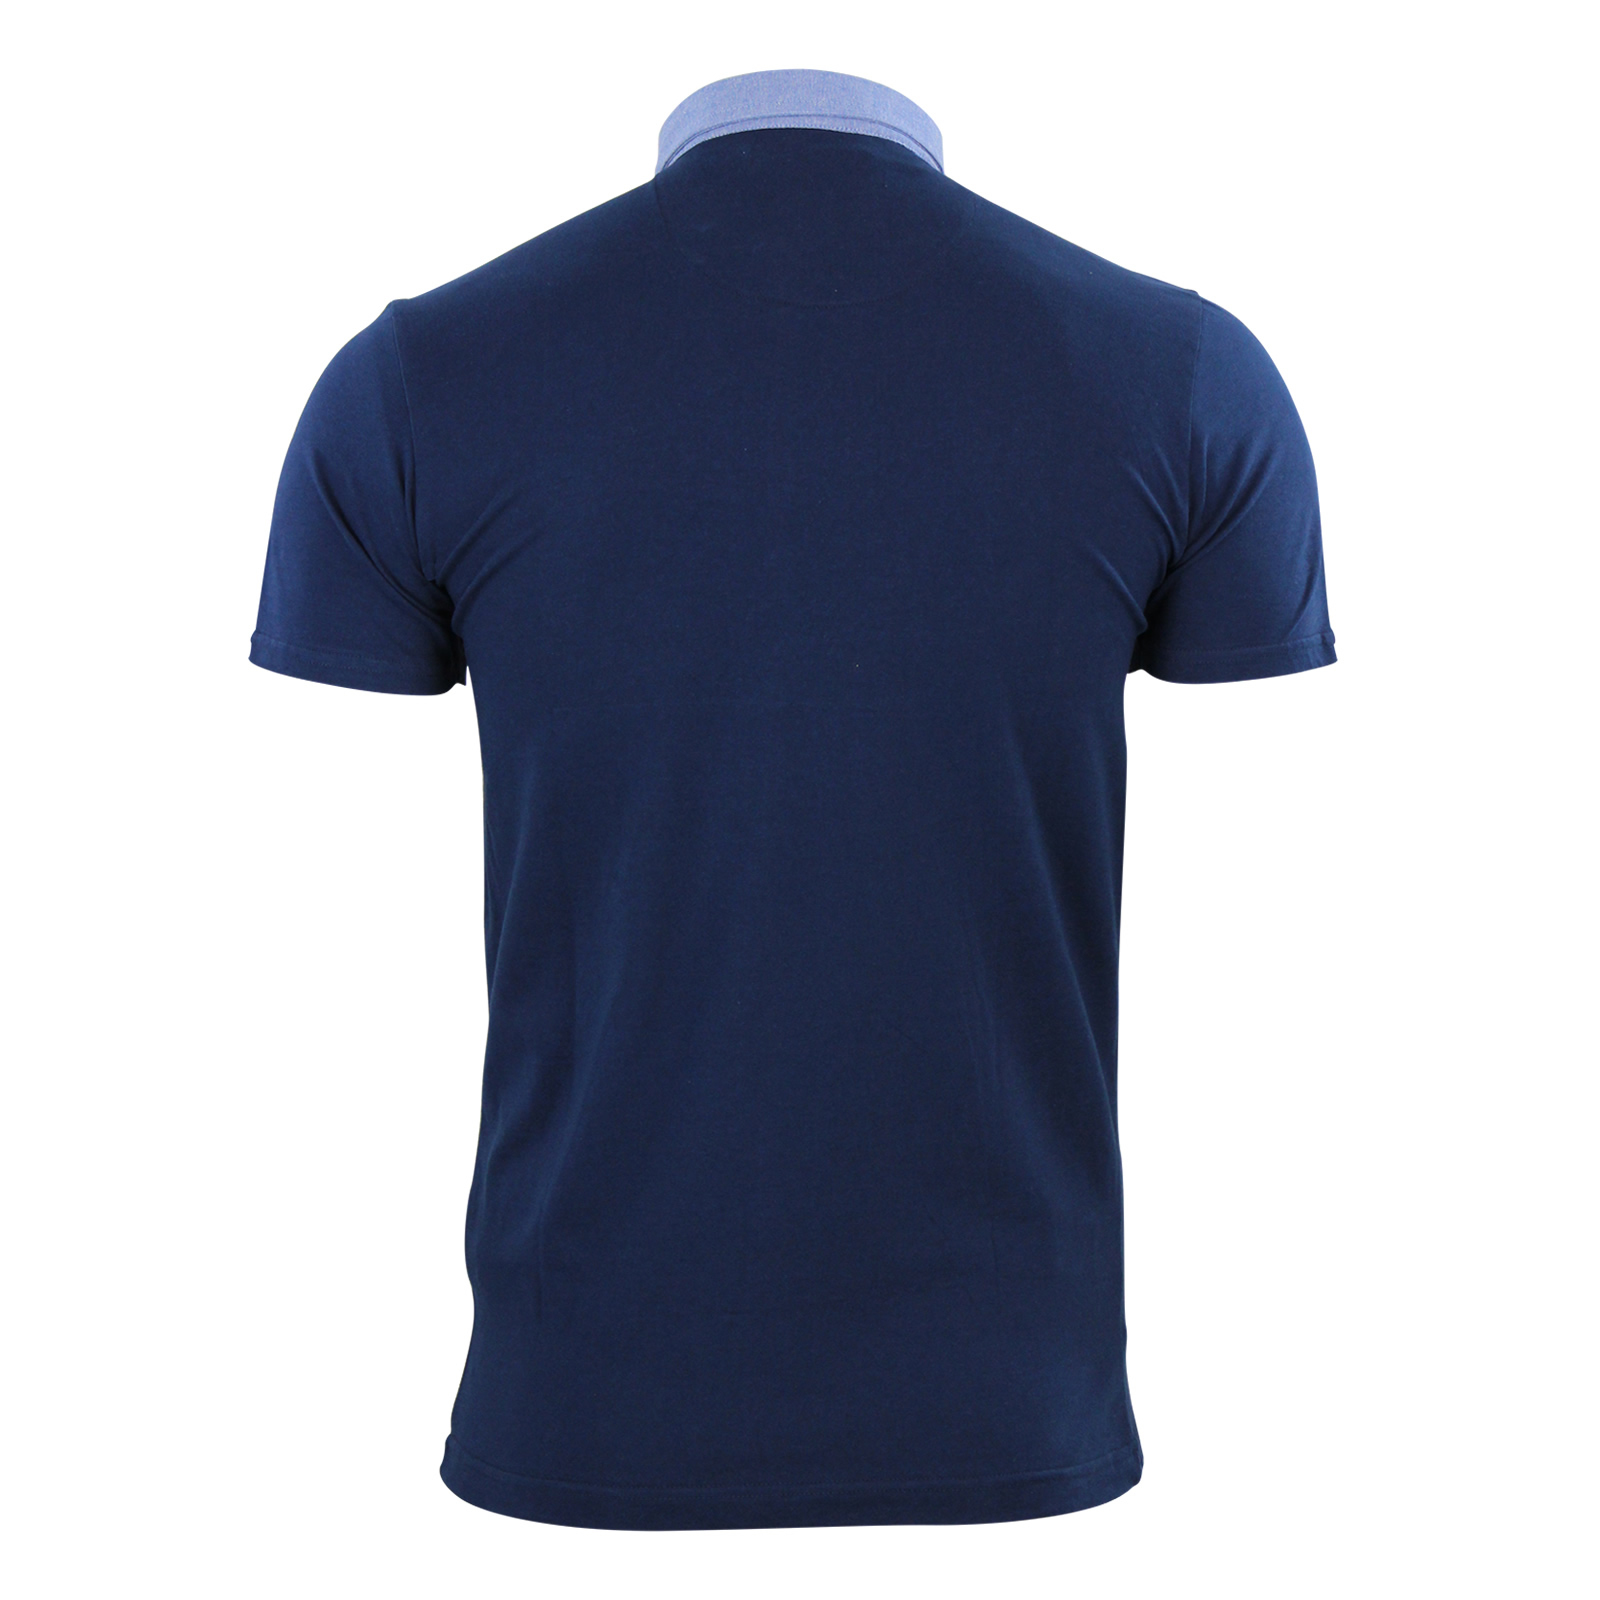 Mens-Polo-T-Shirt-Brave-Soul-Chimera-Chambray-Collared-Cotton-Casual-Top thumbnail 21